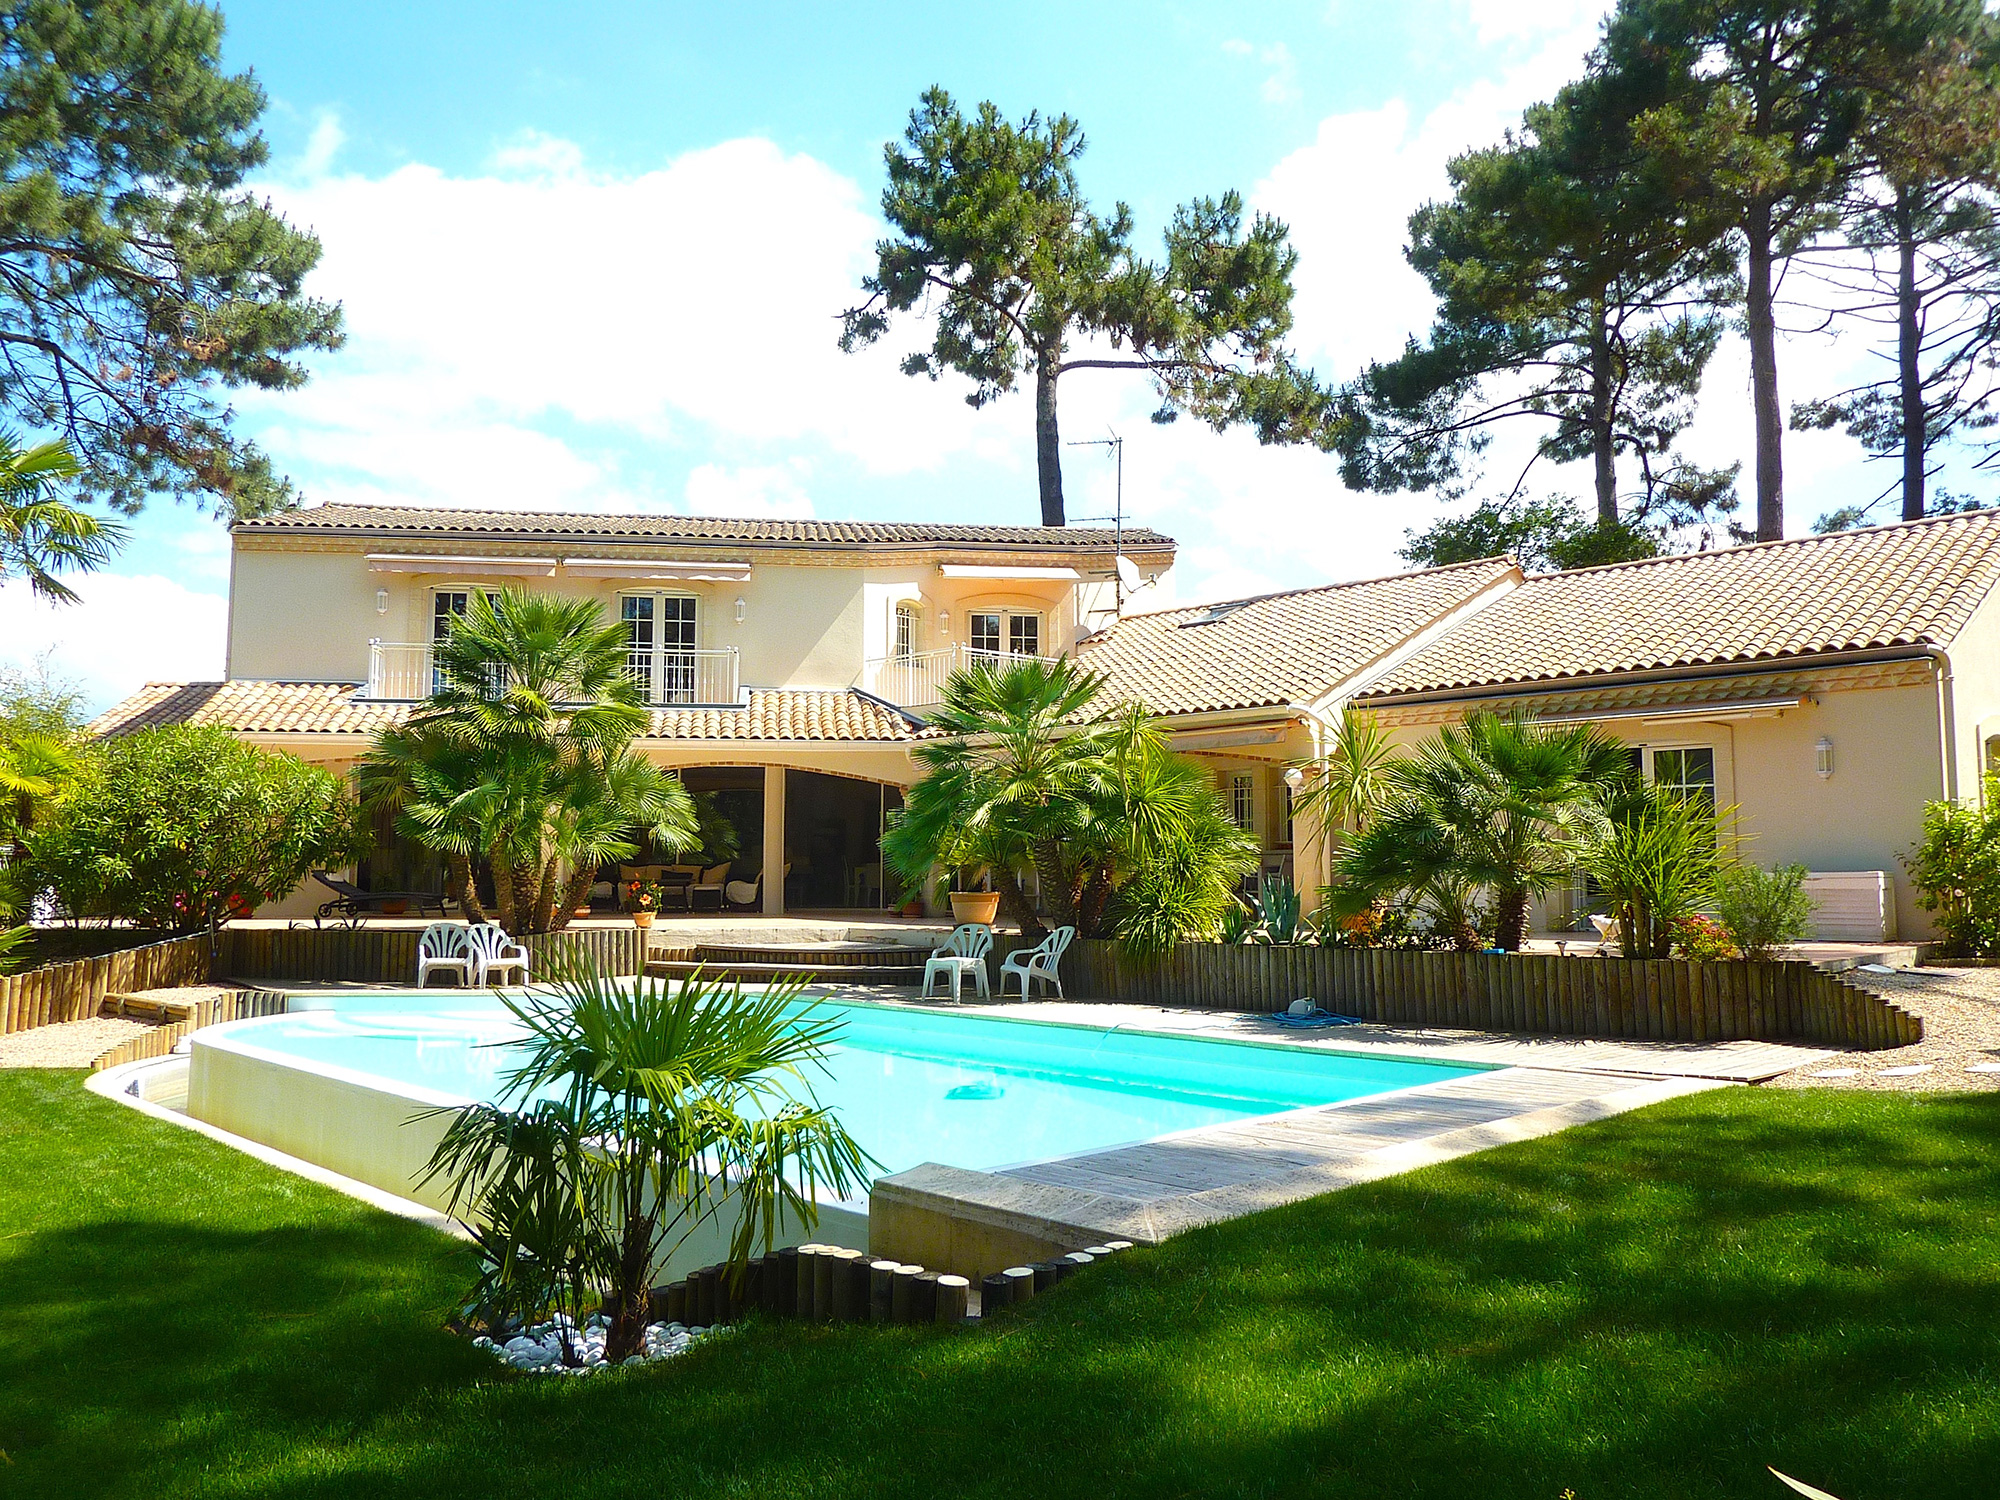 Les plus belle maison du monde avec piscine for Plus belle piscine du monde